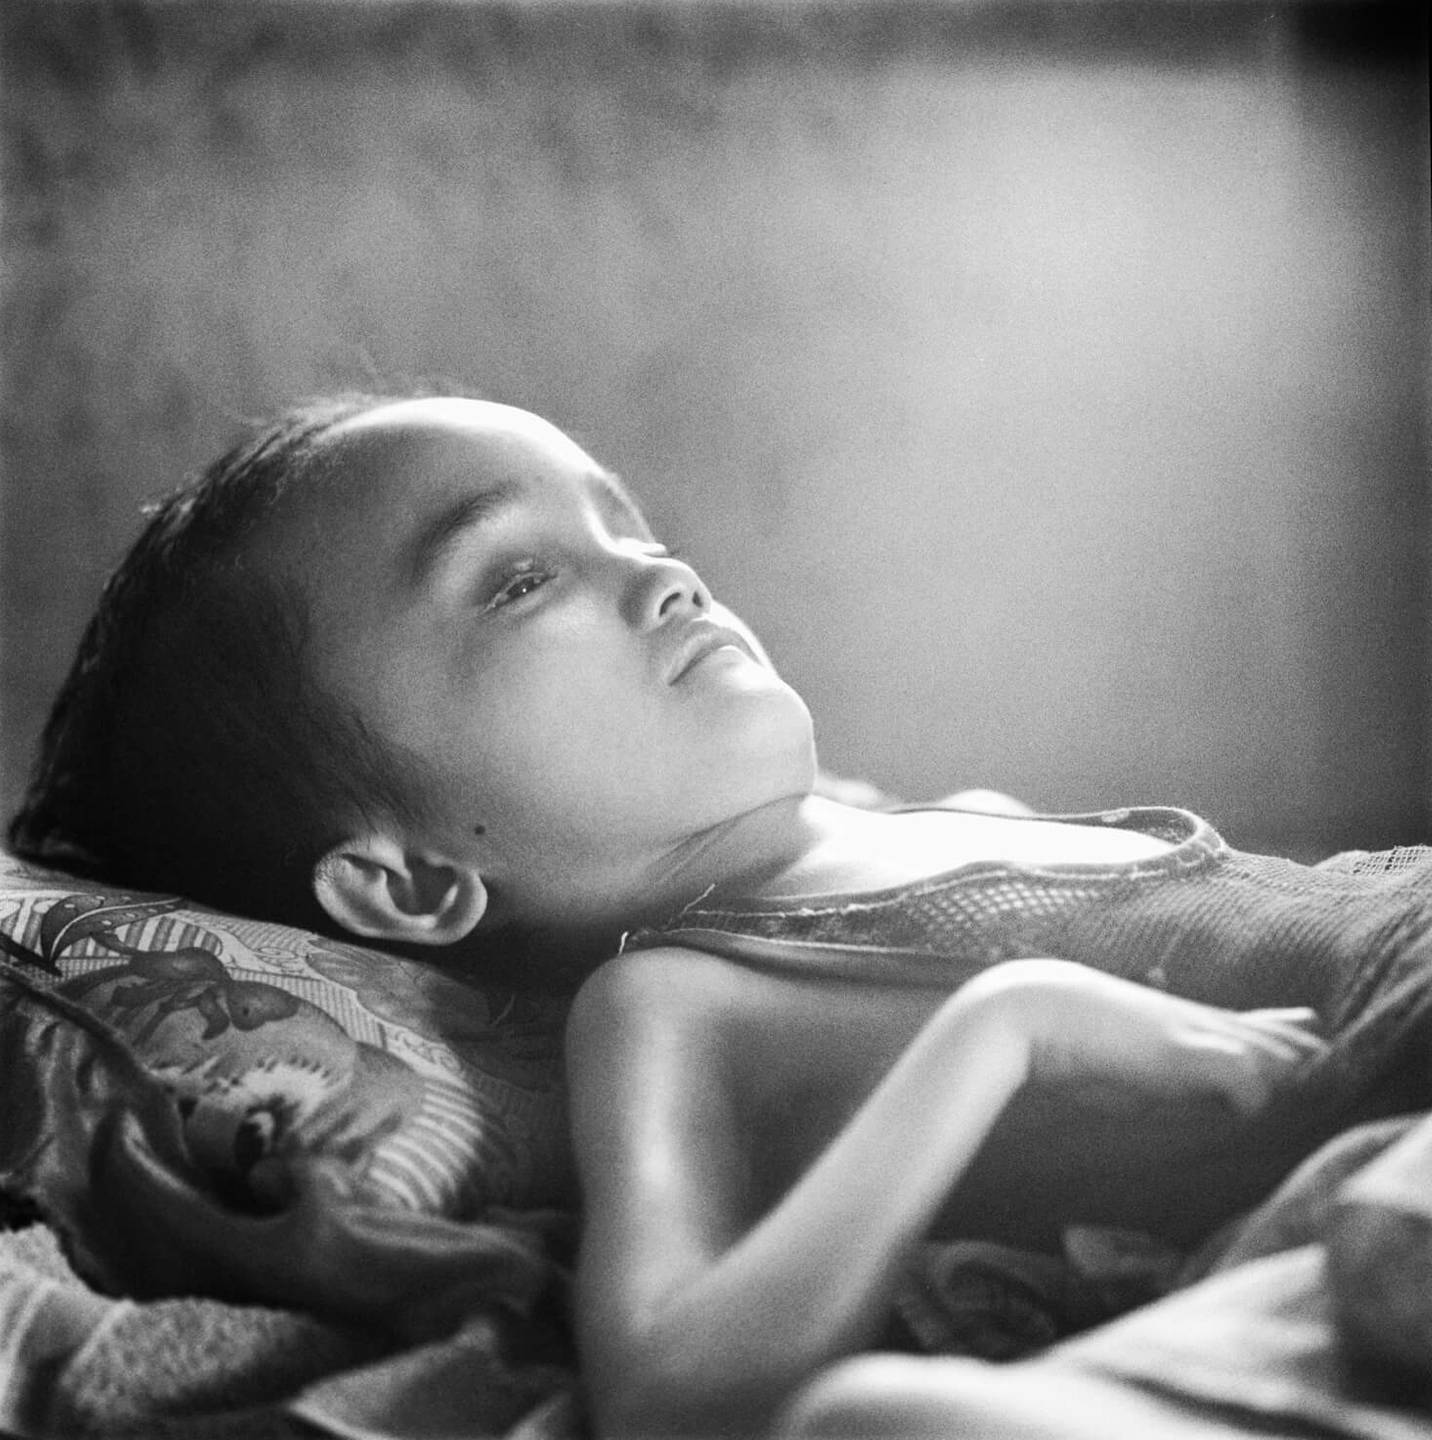 A deformed Asian child lying in bed, sun shining on her.